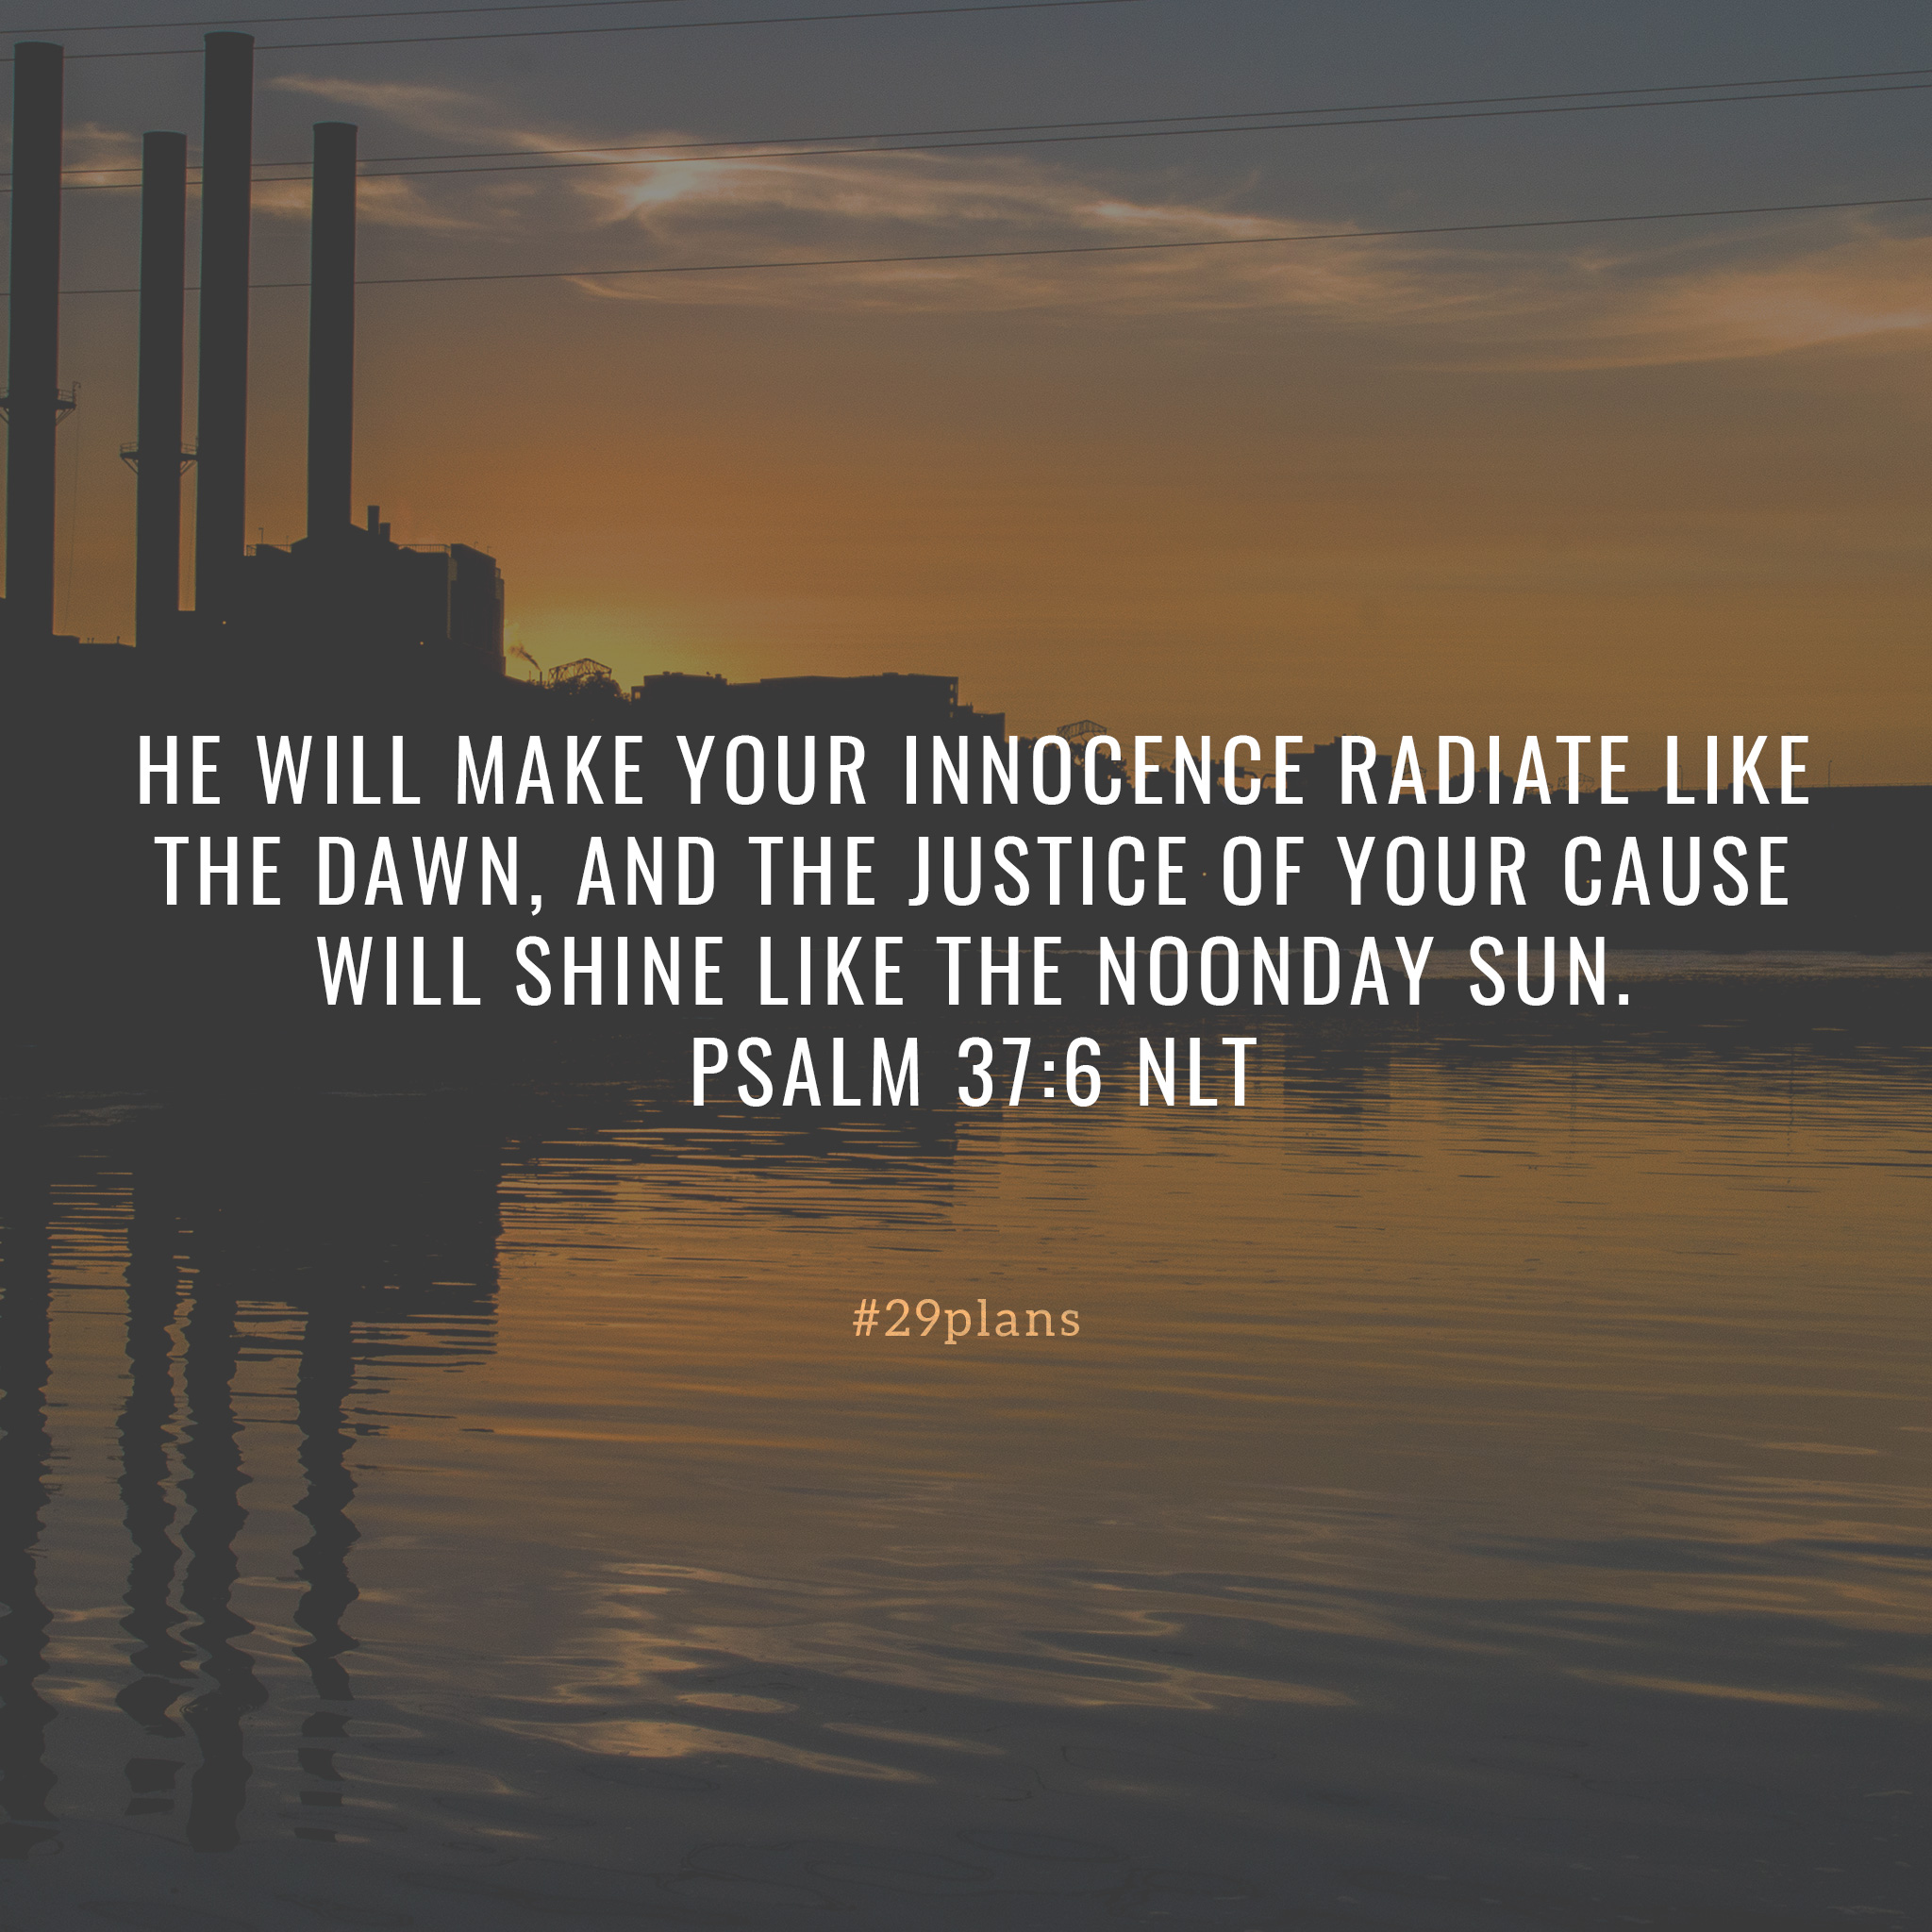 Today's Guide — 03.20.18 — Innocence like the Dawn and Jesus' Death